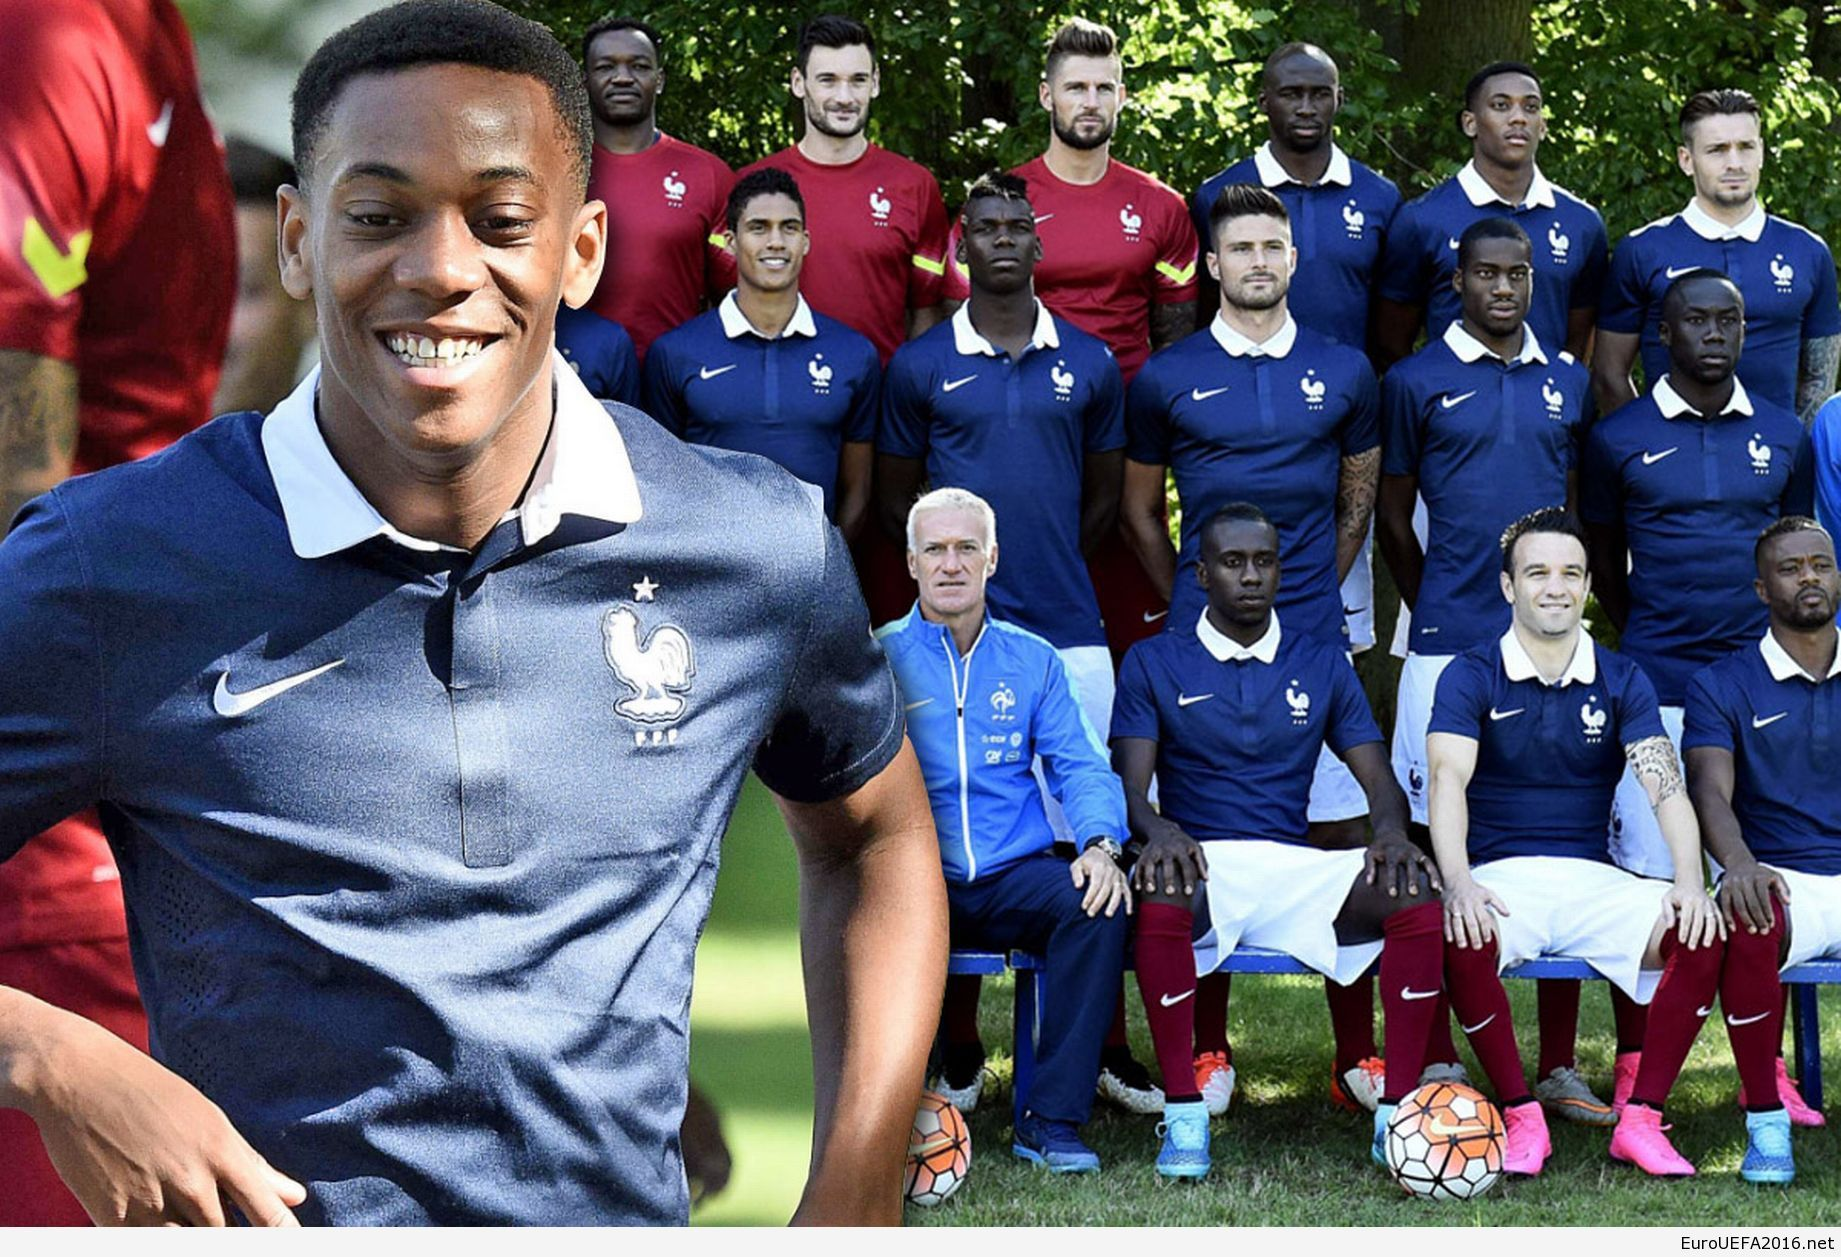 Most Awesome Manchester United Wallpapers Martial UEFA EURO 2016